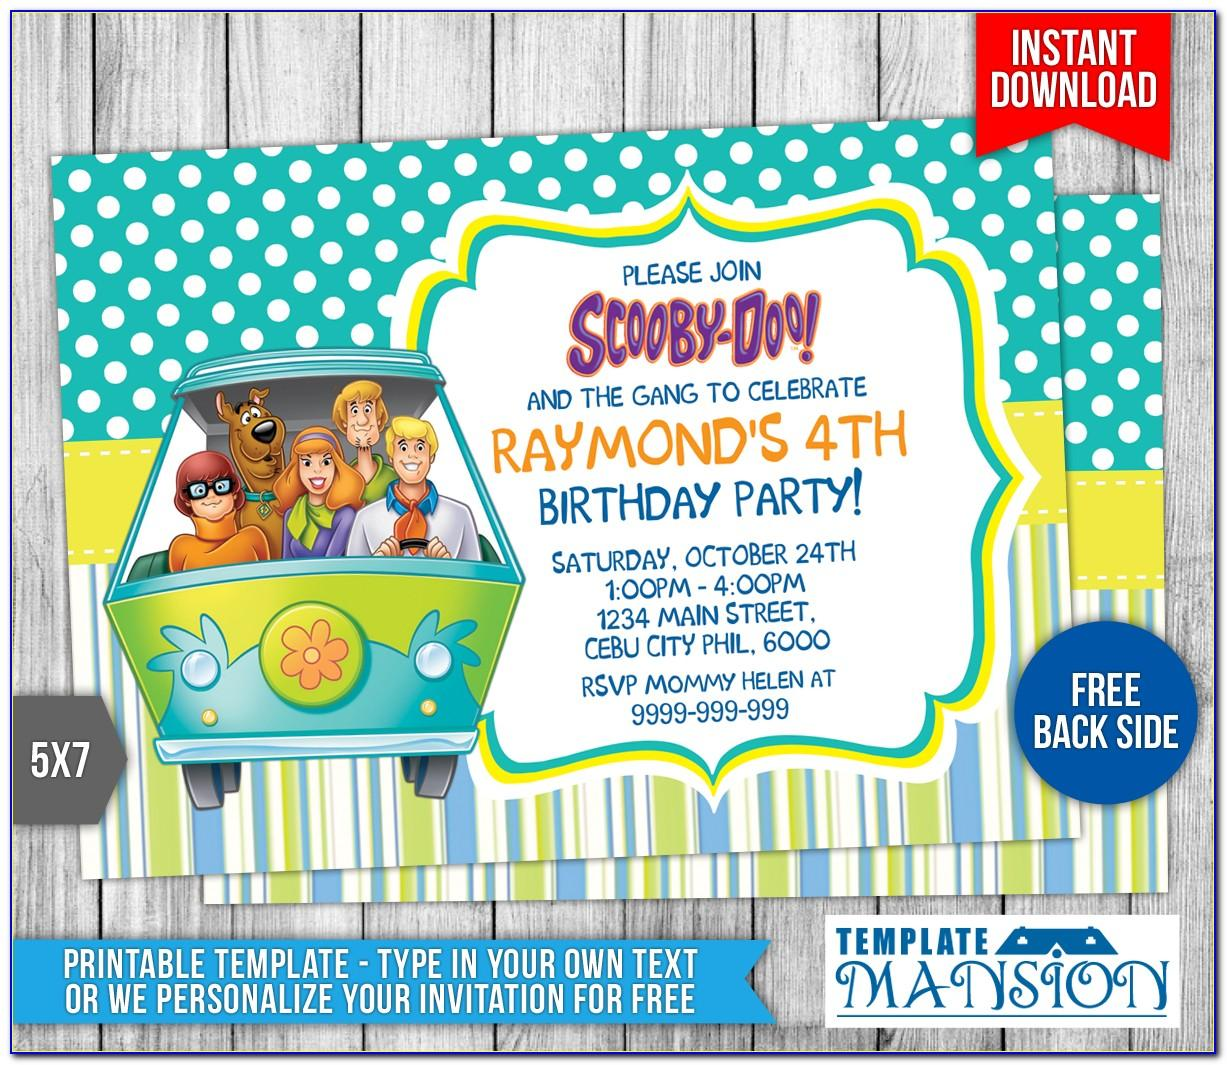 Free Scooby Doo Invitation Template